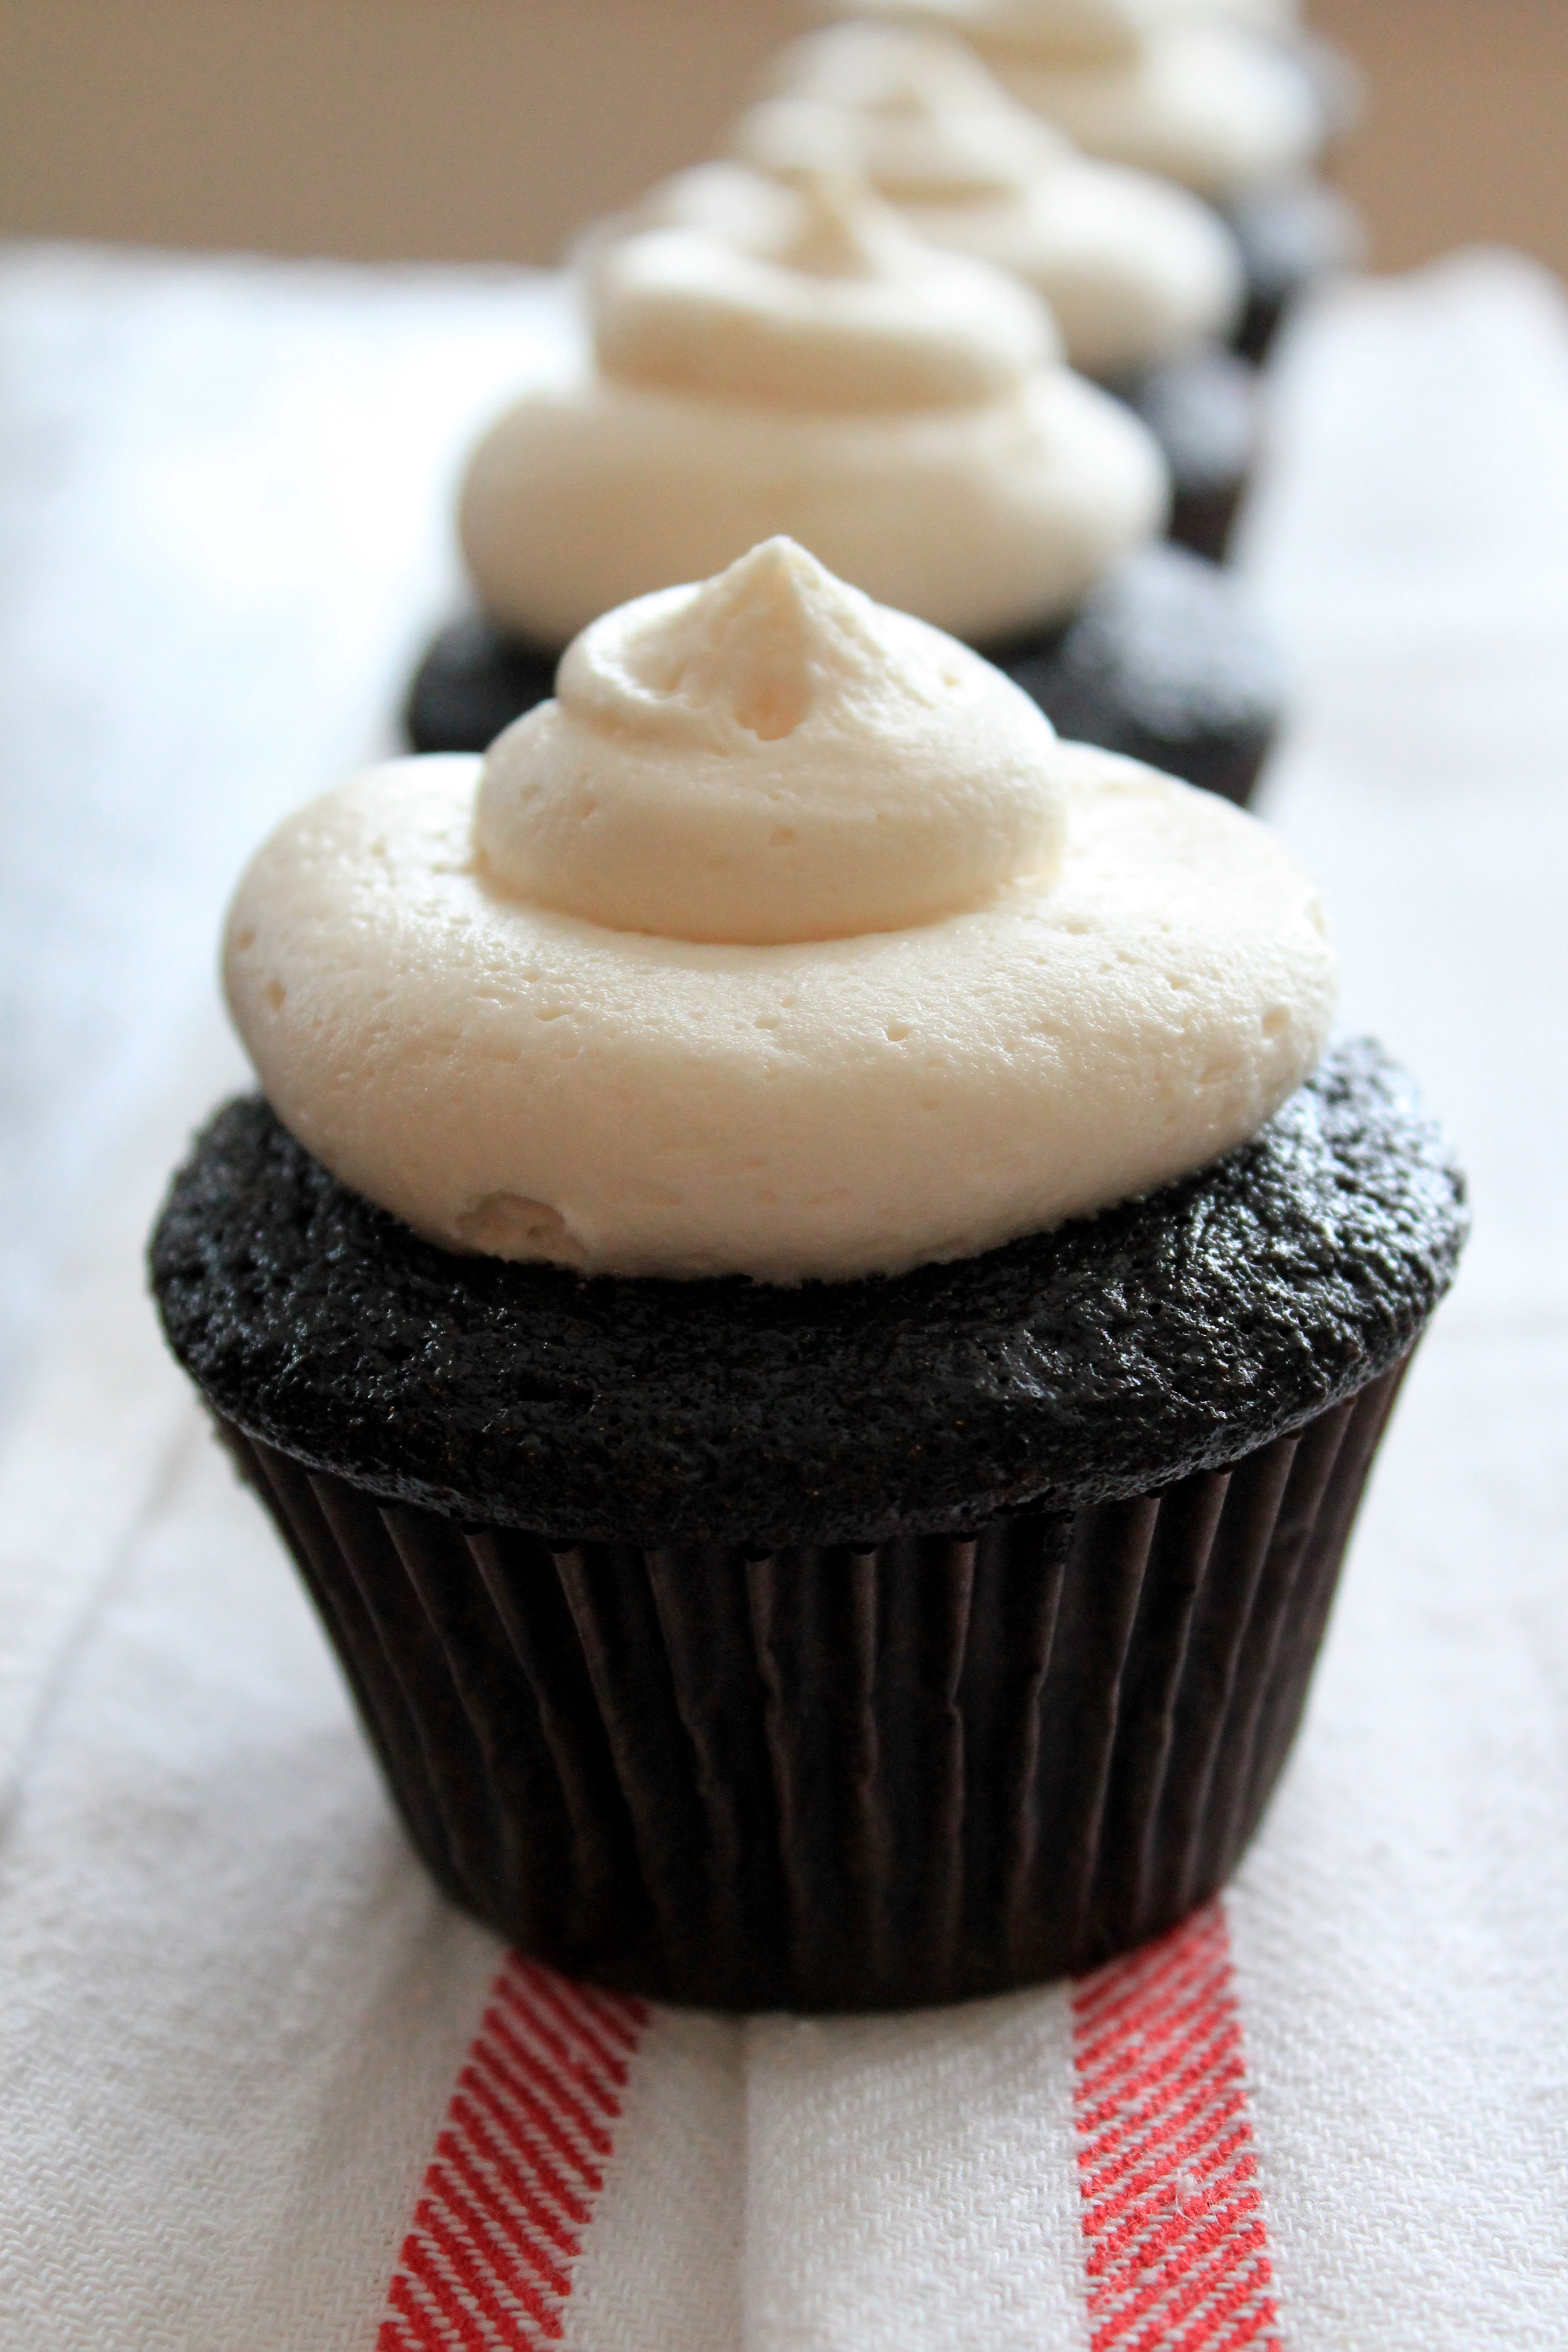 life needs sweets: Chocolate Cupcakes with Buttercream Frosting